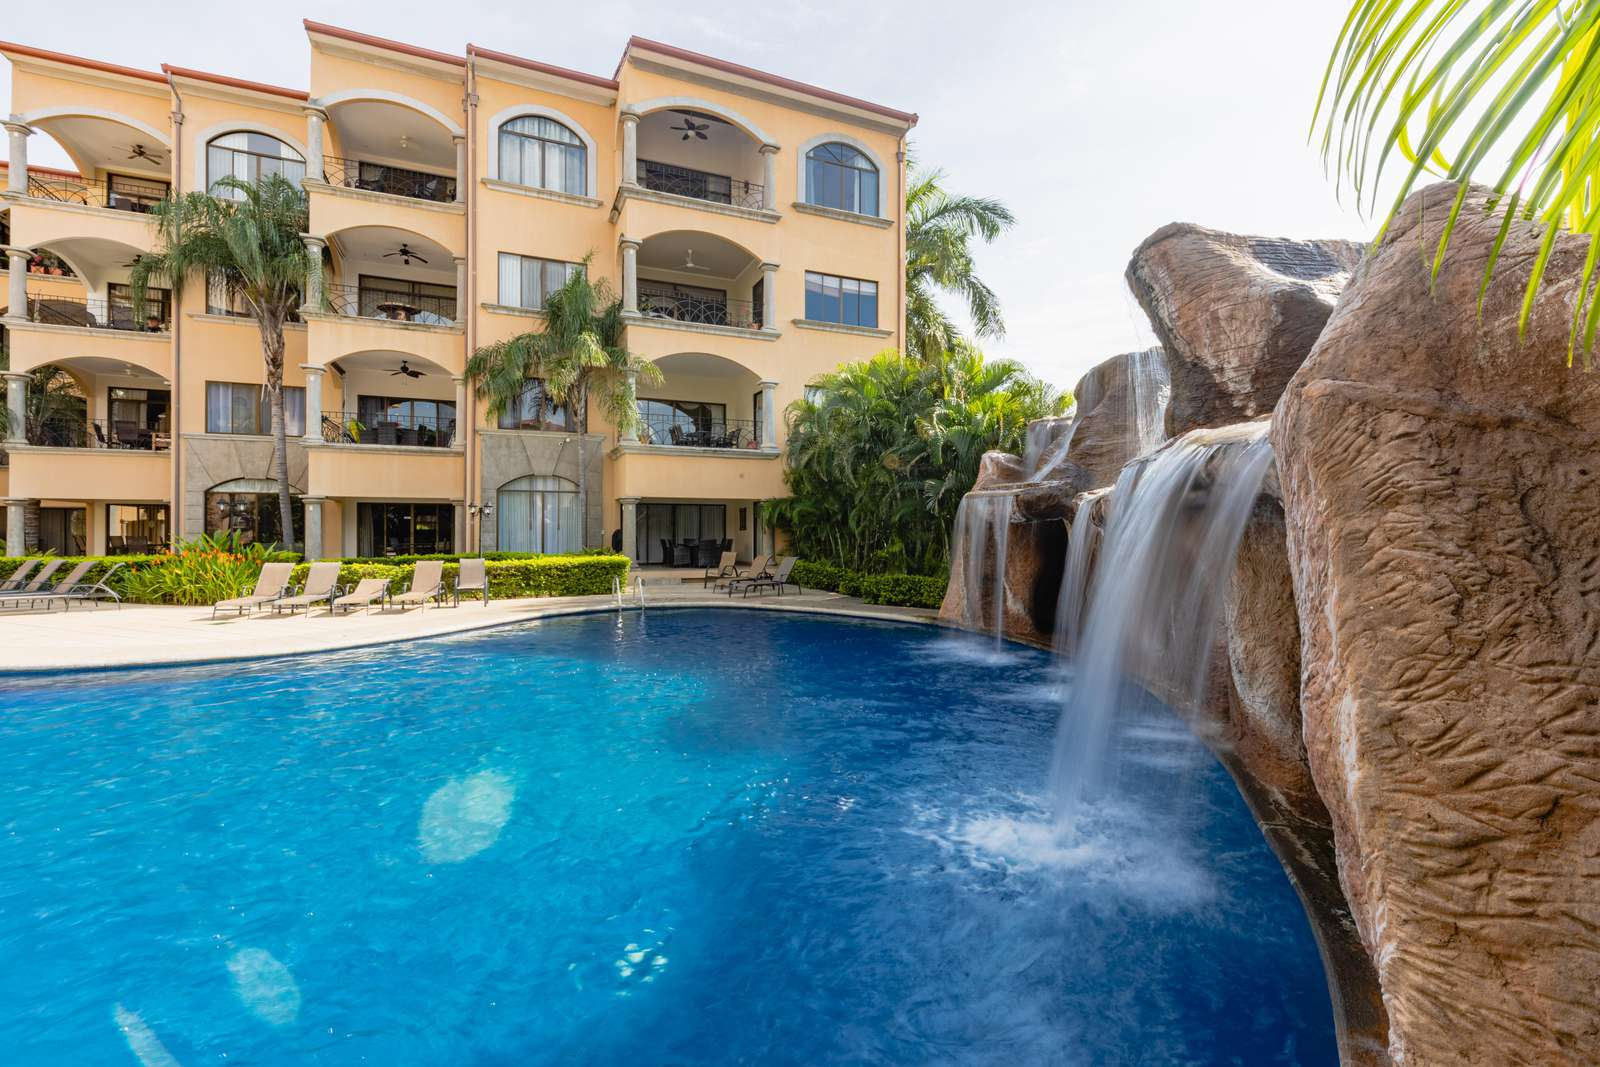 Resort style pool with cascading waterfall feature